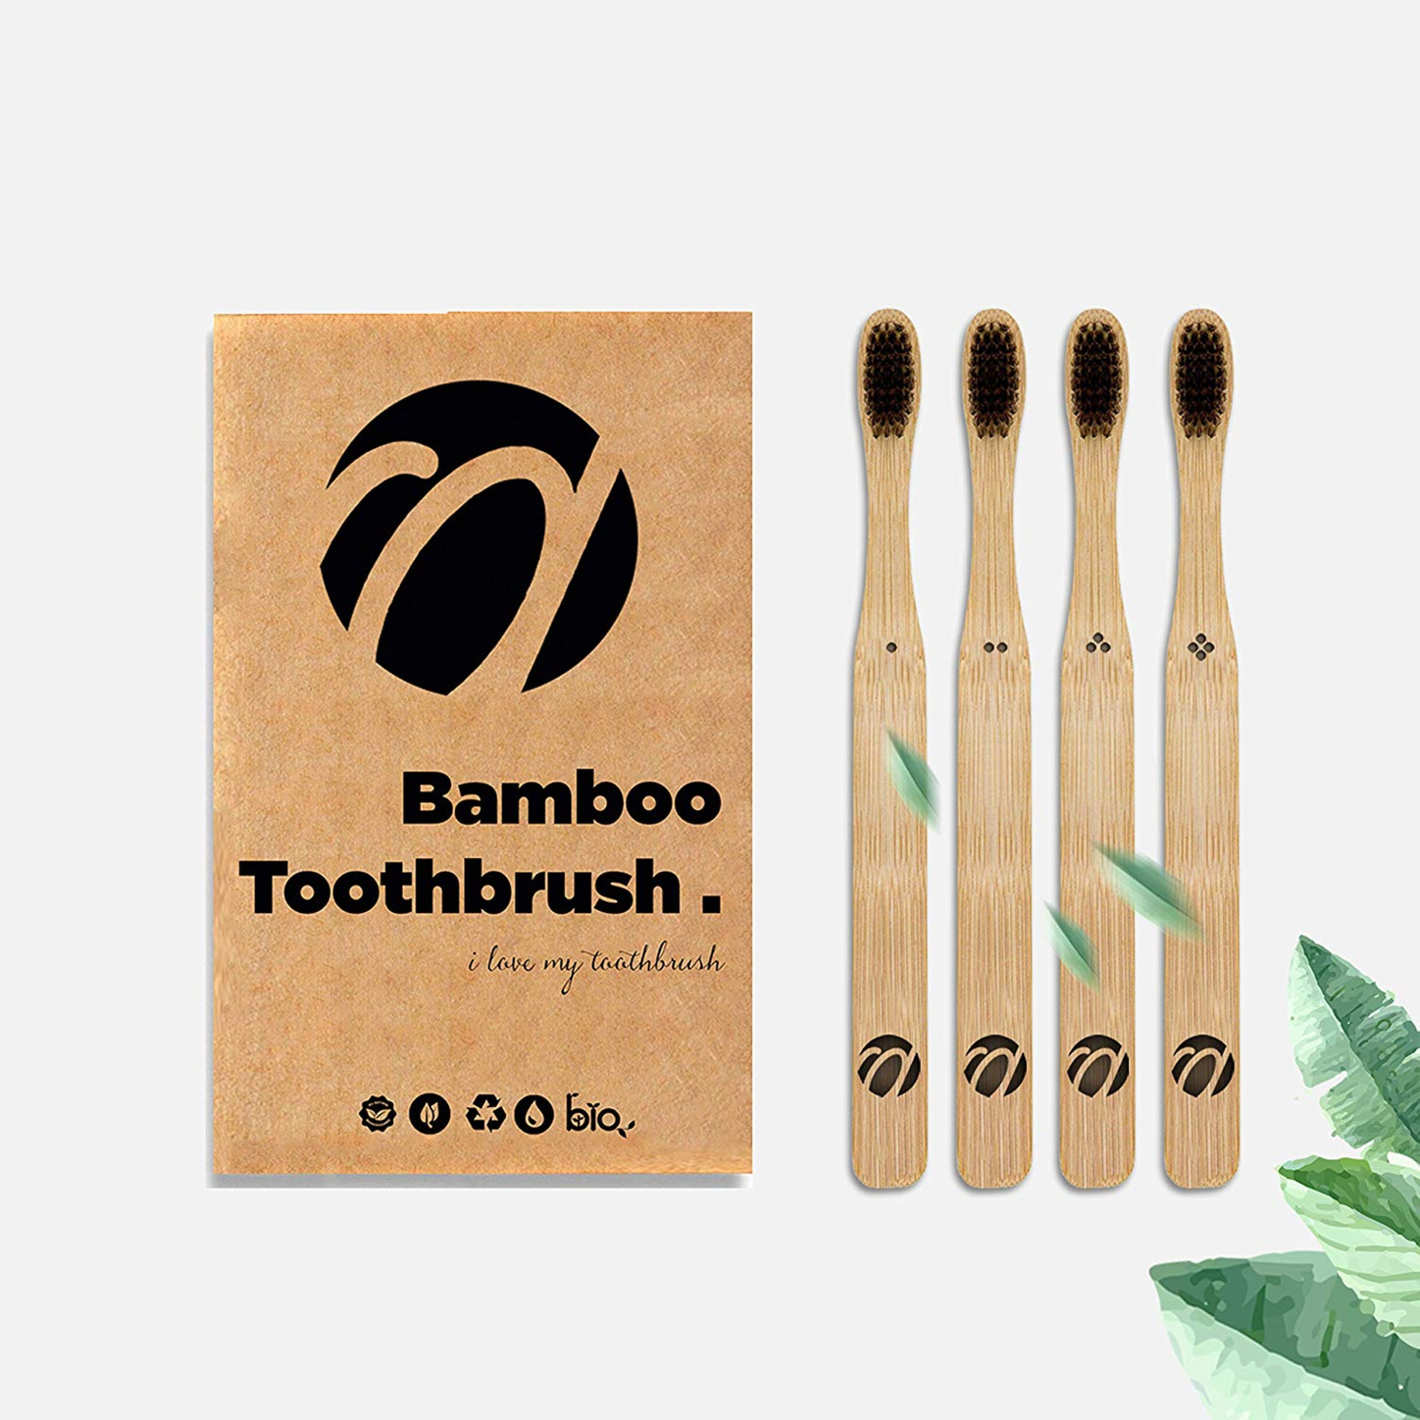 PAVICICO Bamboo Toothbrush